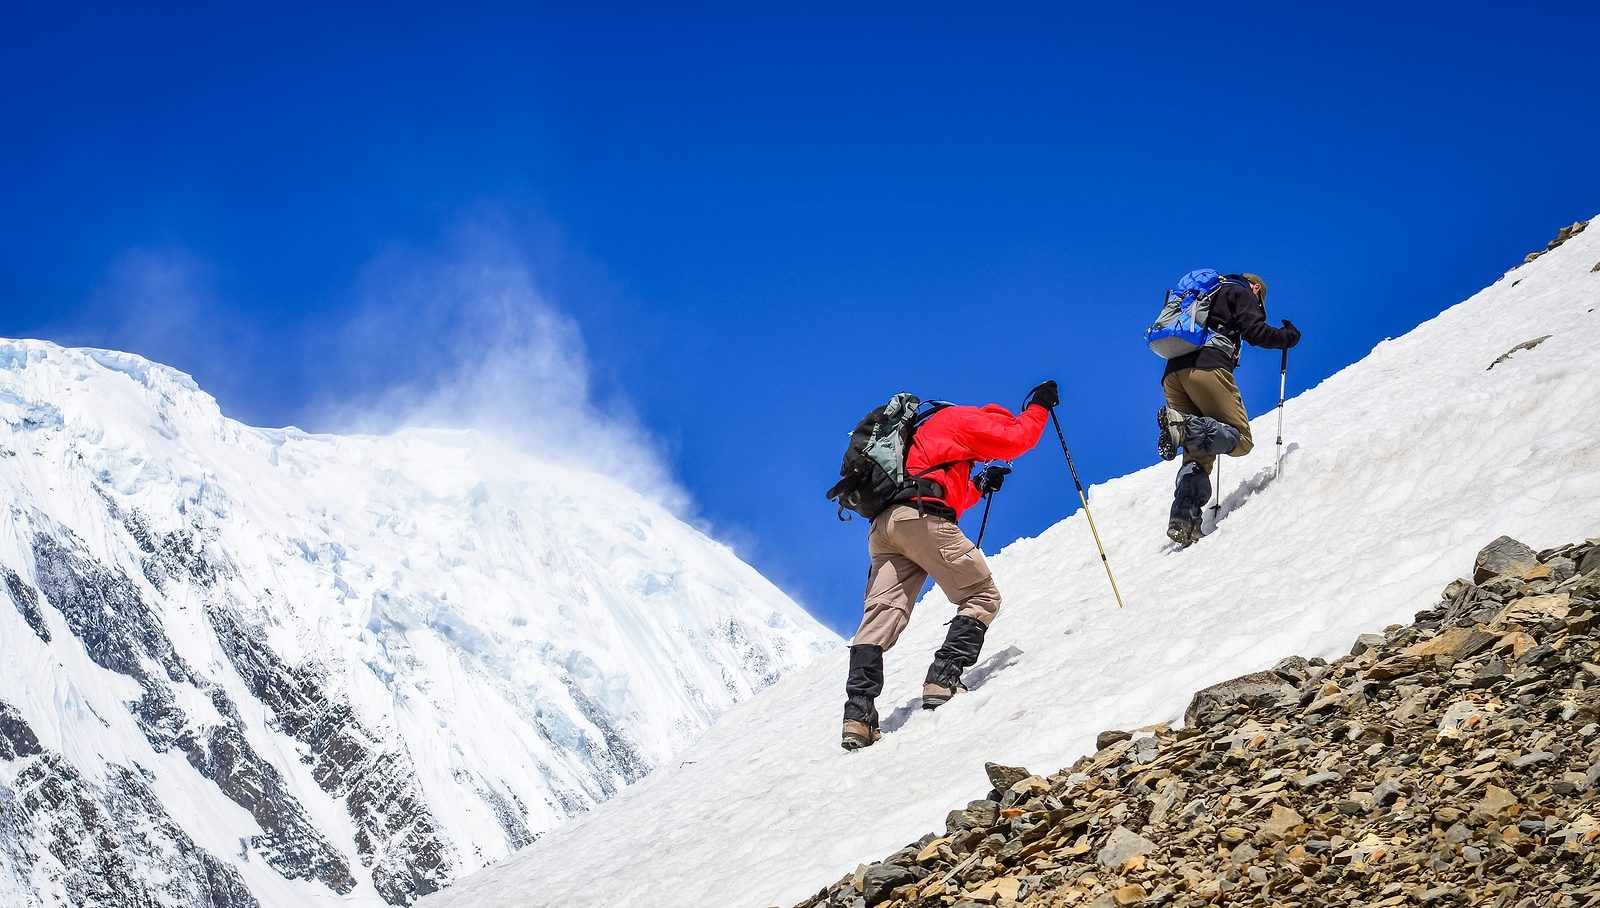 Two mountain backpackers walking on snow with peaks background Himalayas